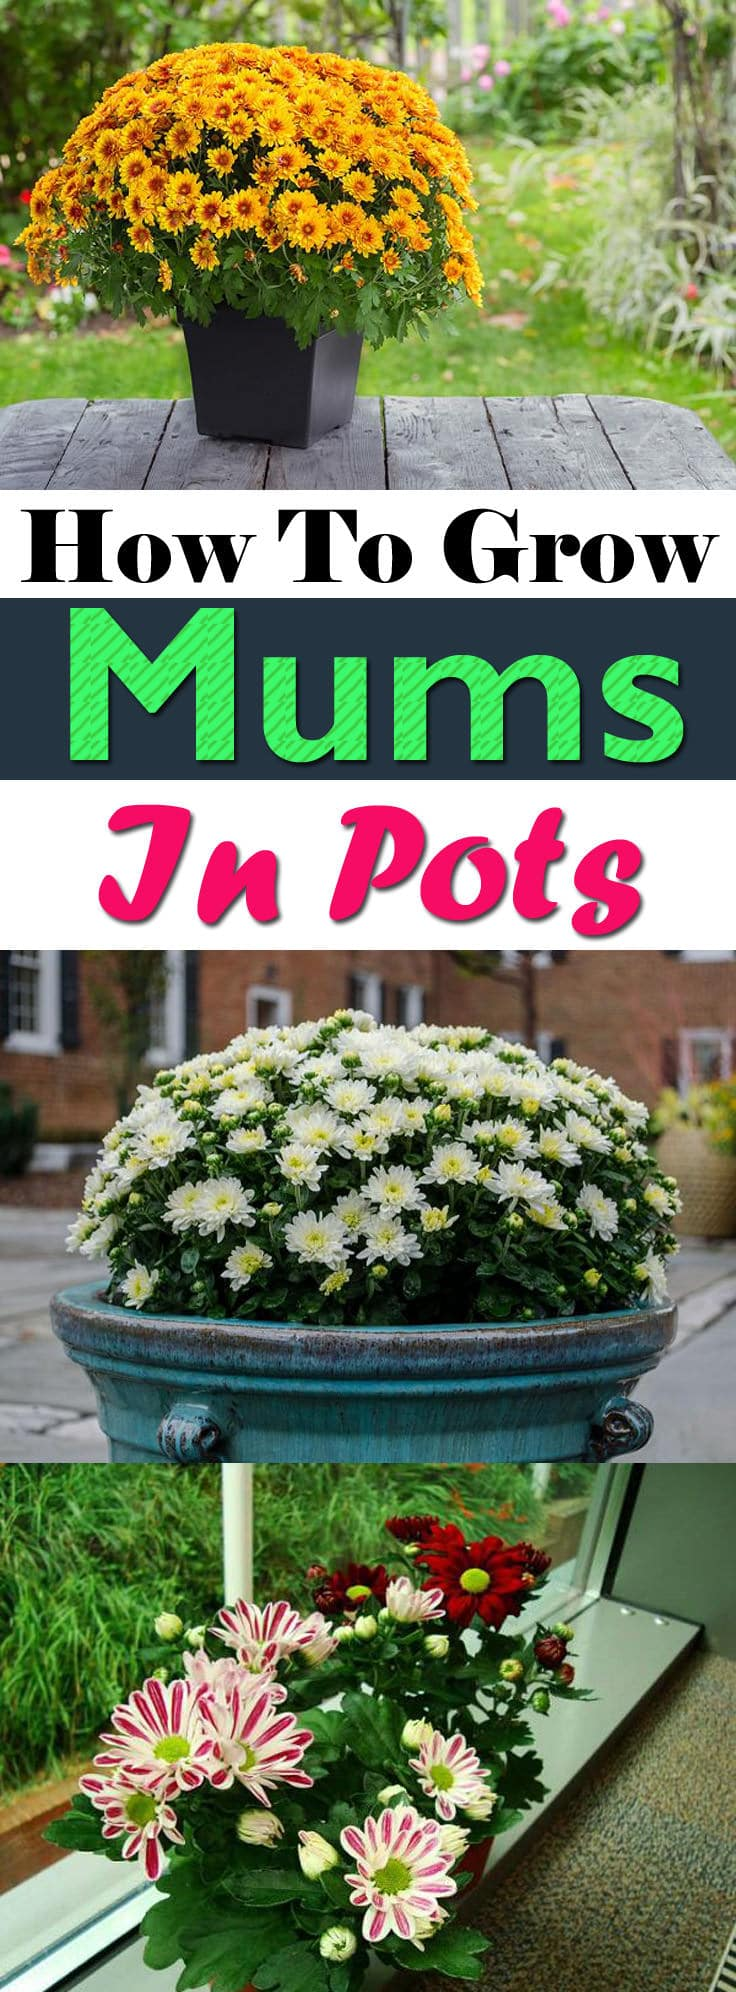 If you want to know how to grow chrysanthemums in pots, read below. Growing chrysanthemums in pots is quite easy if you know what to do and how?